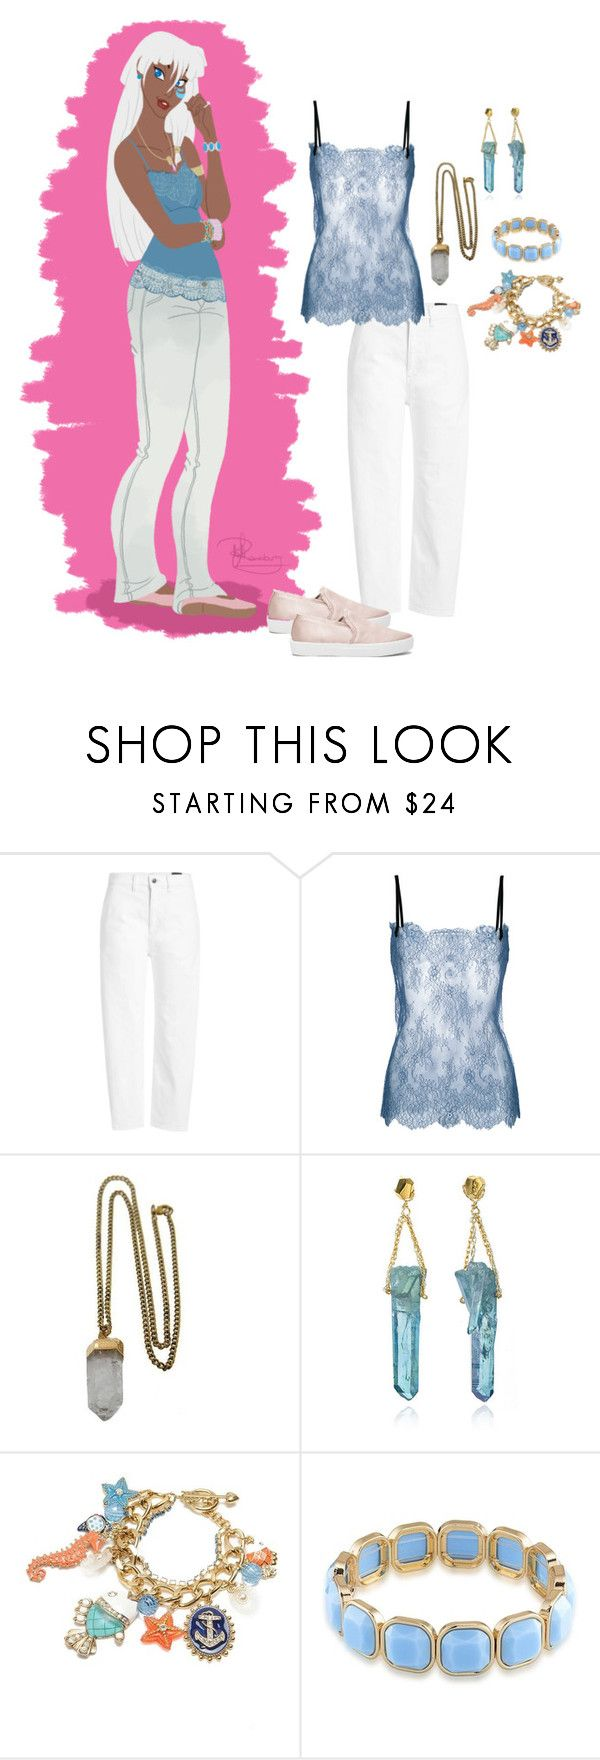 """""""Tella-In-SA - Kida"""" by misssally ❤ liked on Polyvore featuring Vince, Philosophy di Lorenzo Serafini, Lacey Ryan, Pade Vavra, Betsey Johnson, 1st & Gorgeous by Carolee and Joie"""